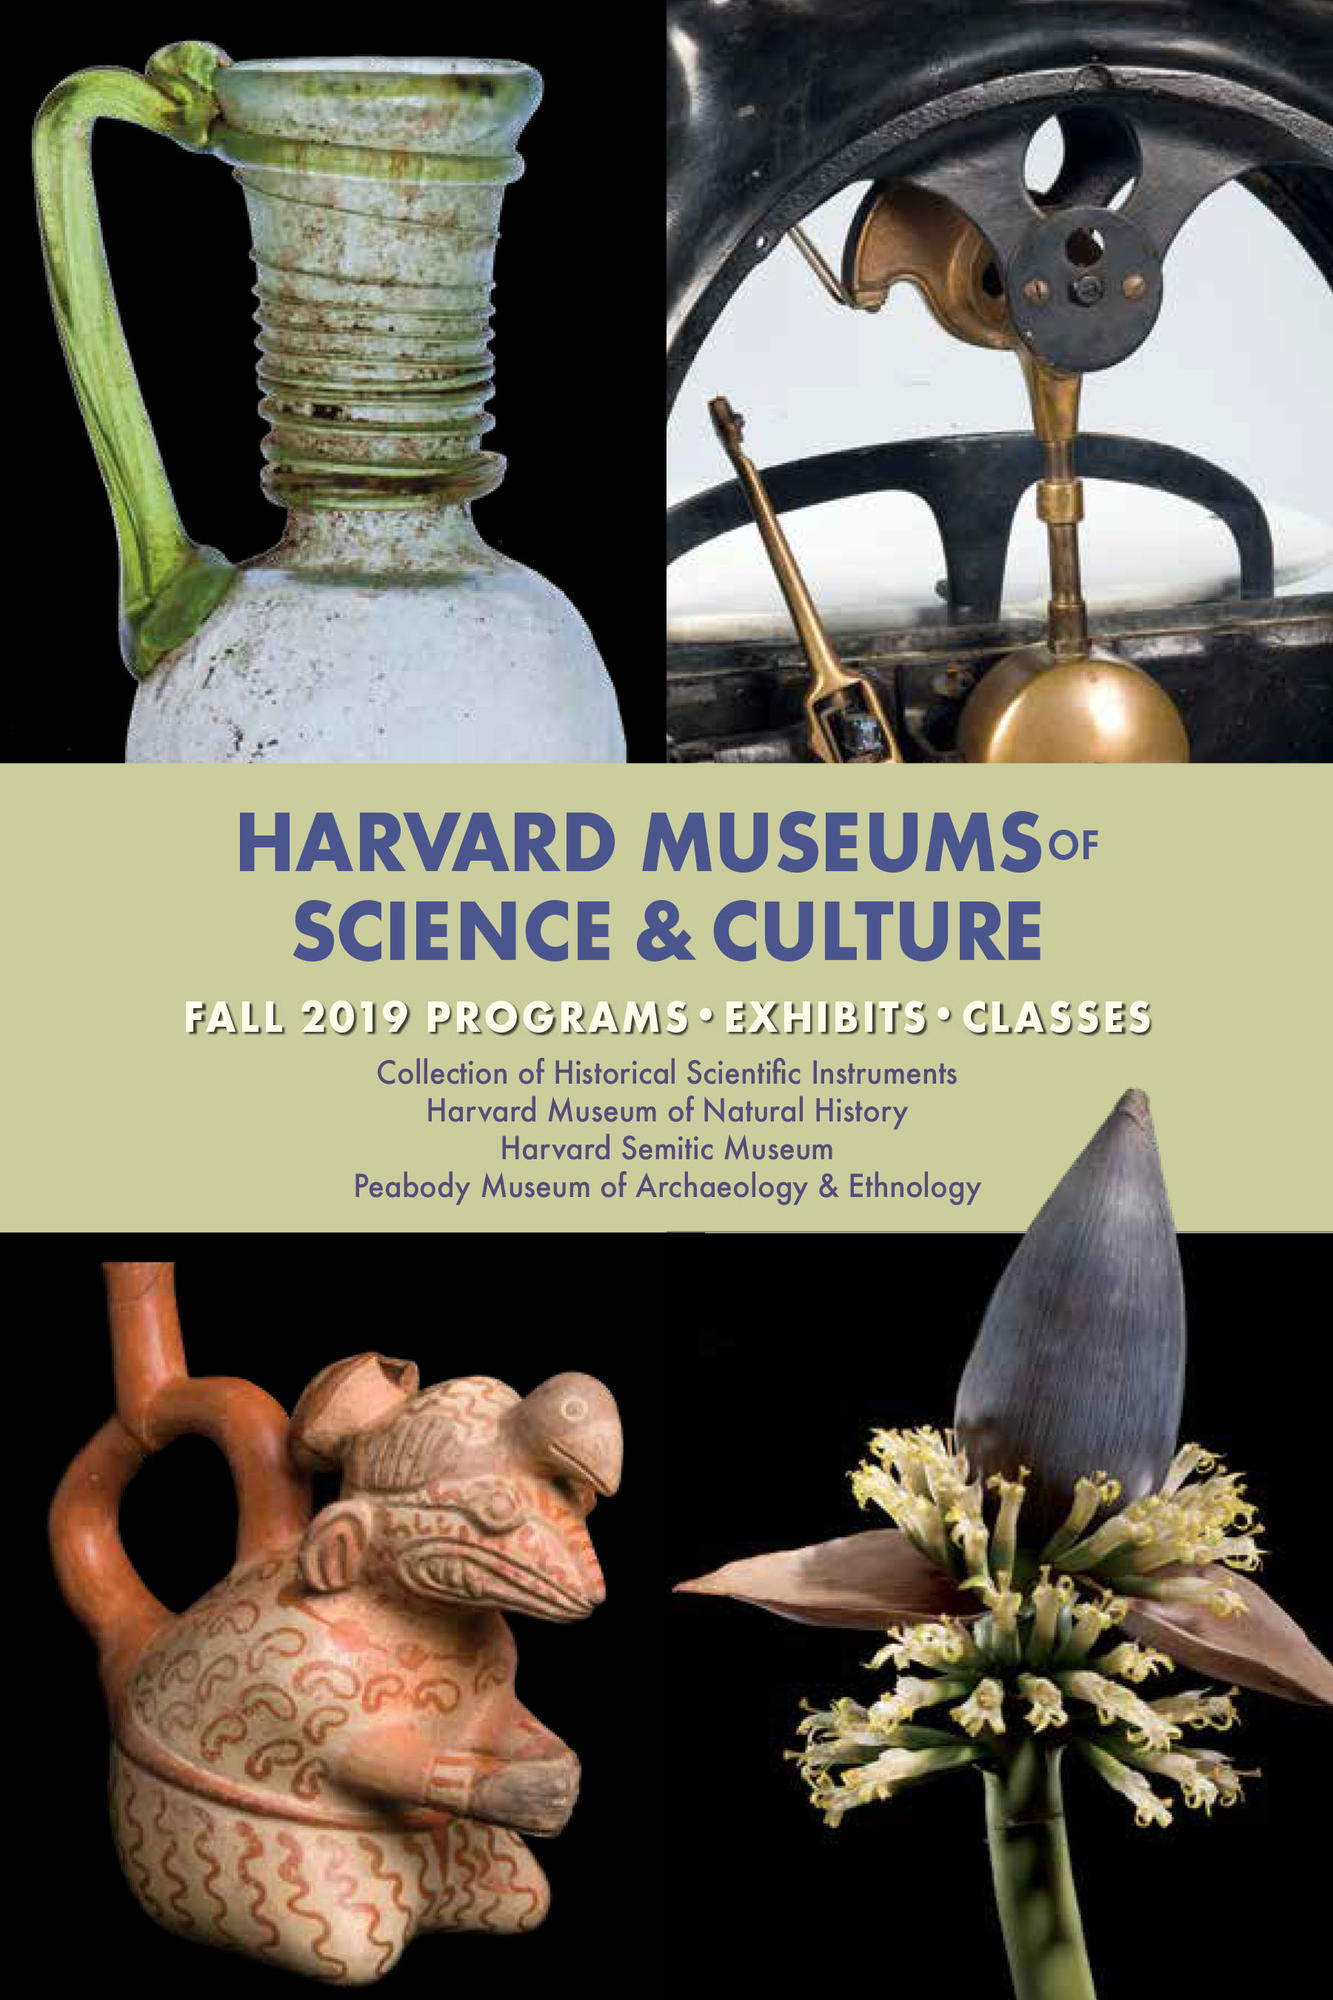 Four objects, one of a juglet one of a toledo scale, one of a banana flower and one of a moche water bottle with the Harvard Museums of Science and Culture Fall 2019 Public Programs Guide on it.